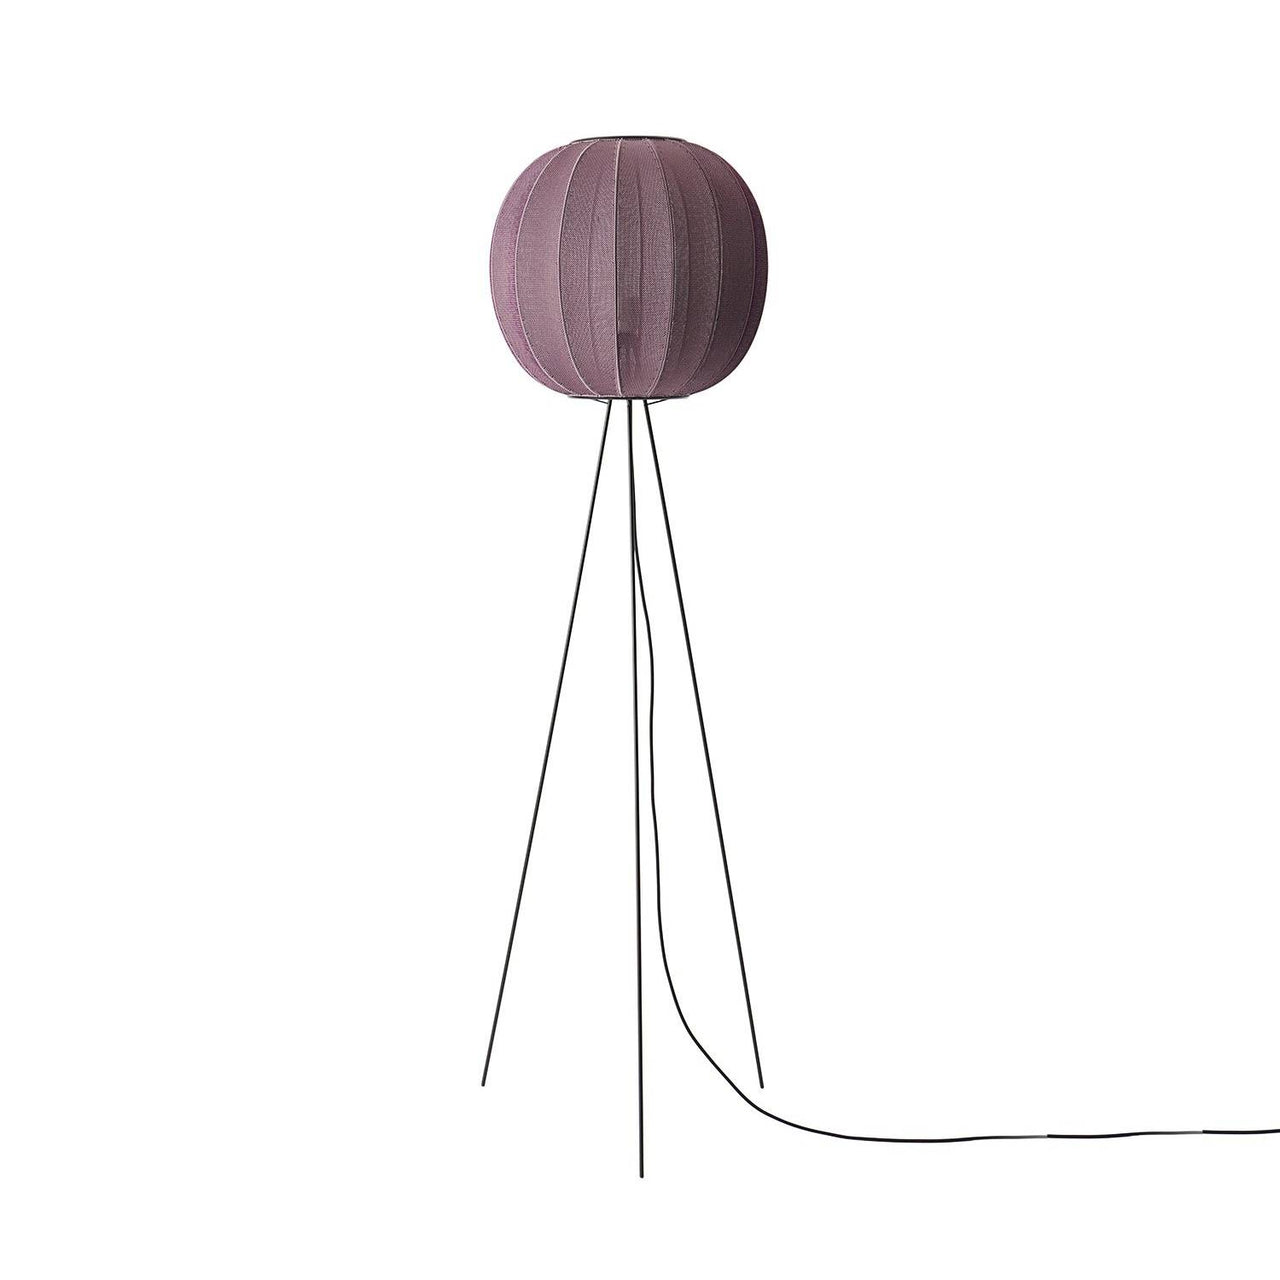 Knit-Wit Floor Lamp: Round 45 + High + Burgundy